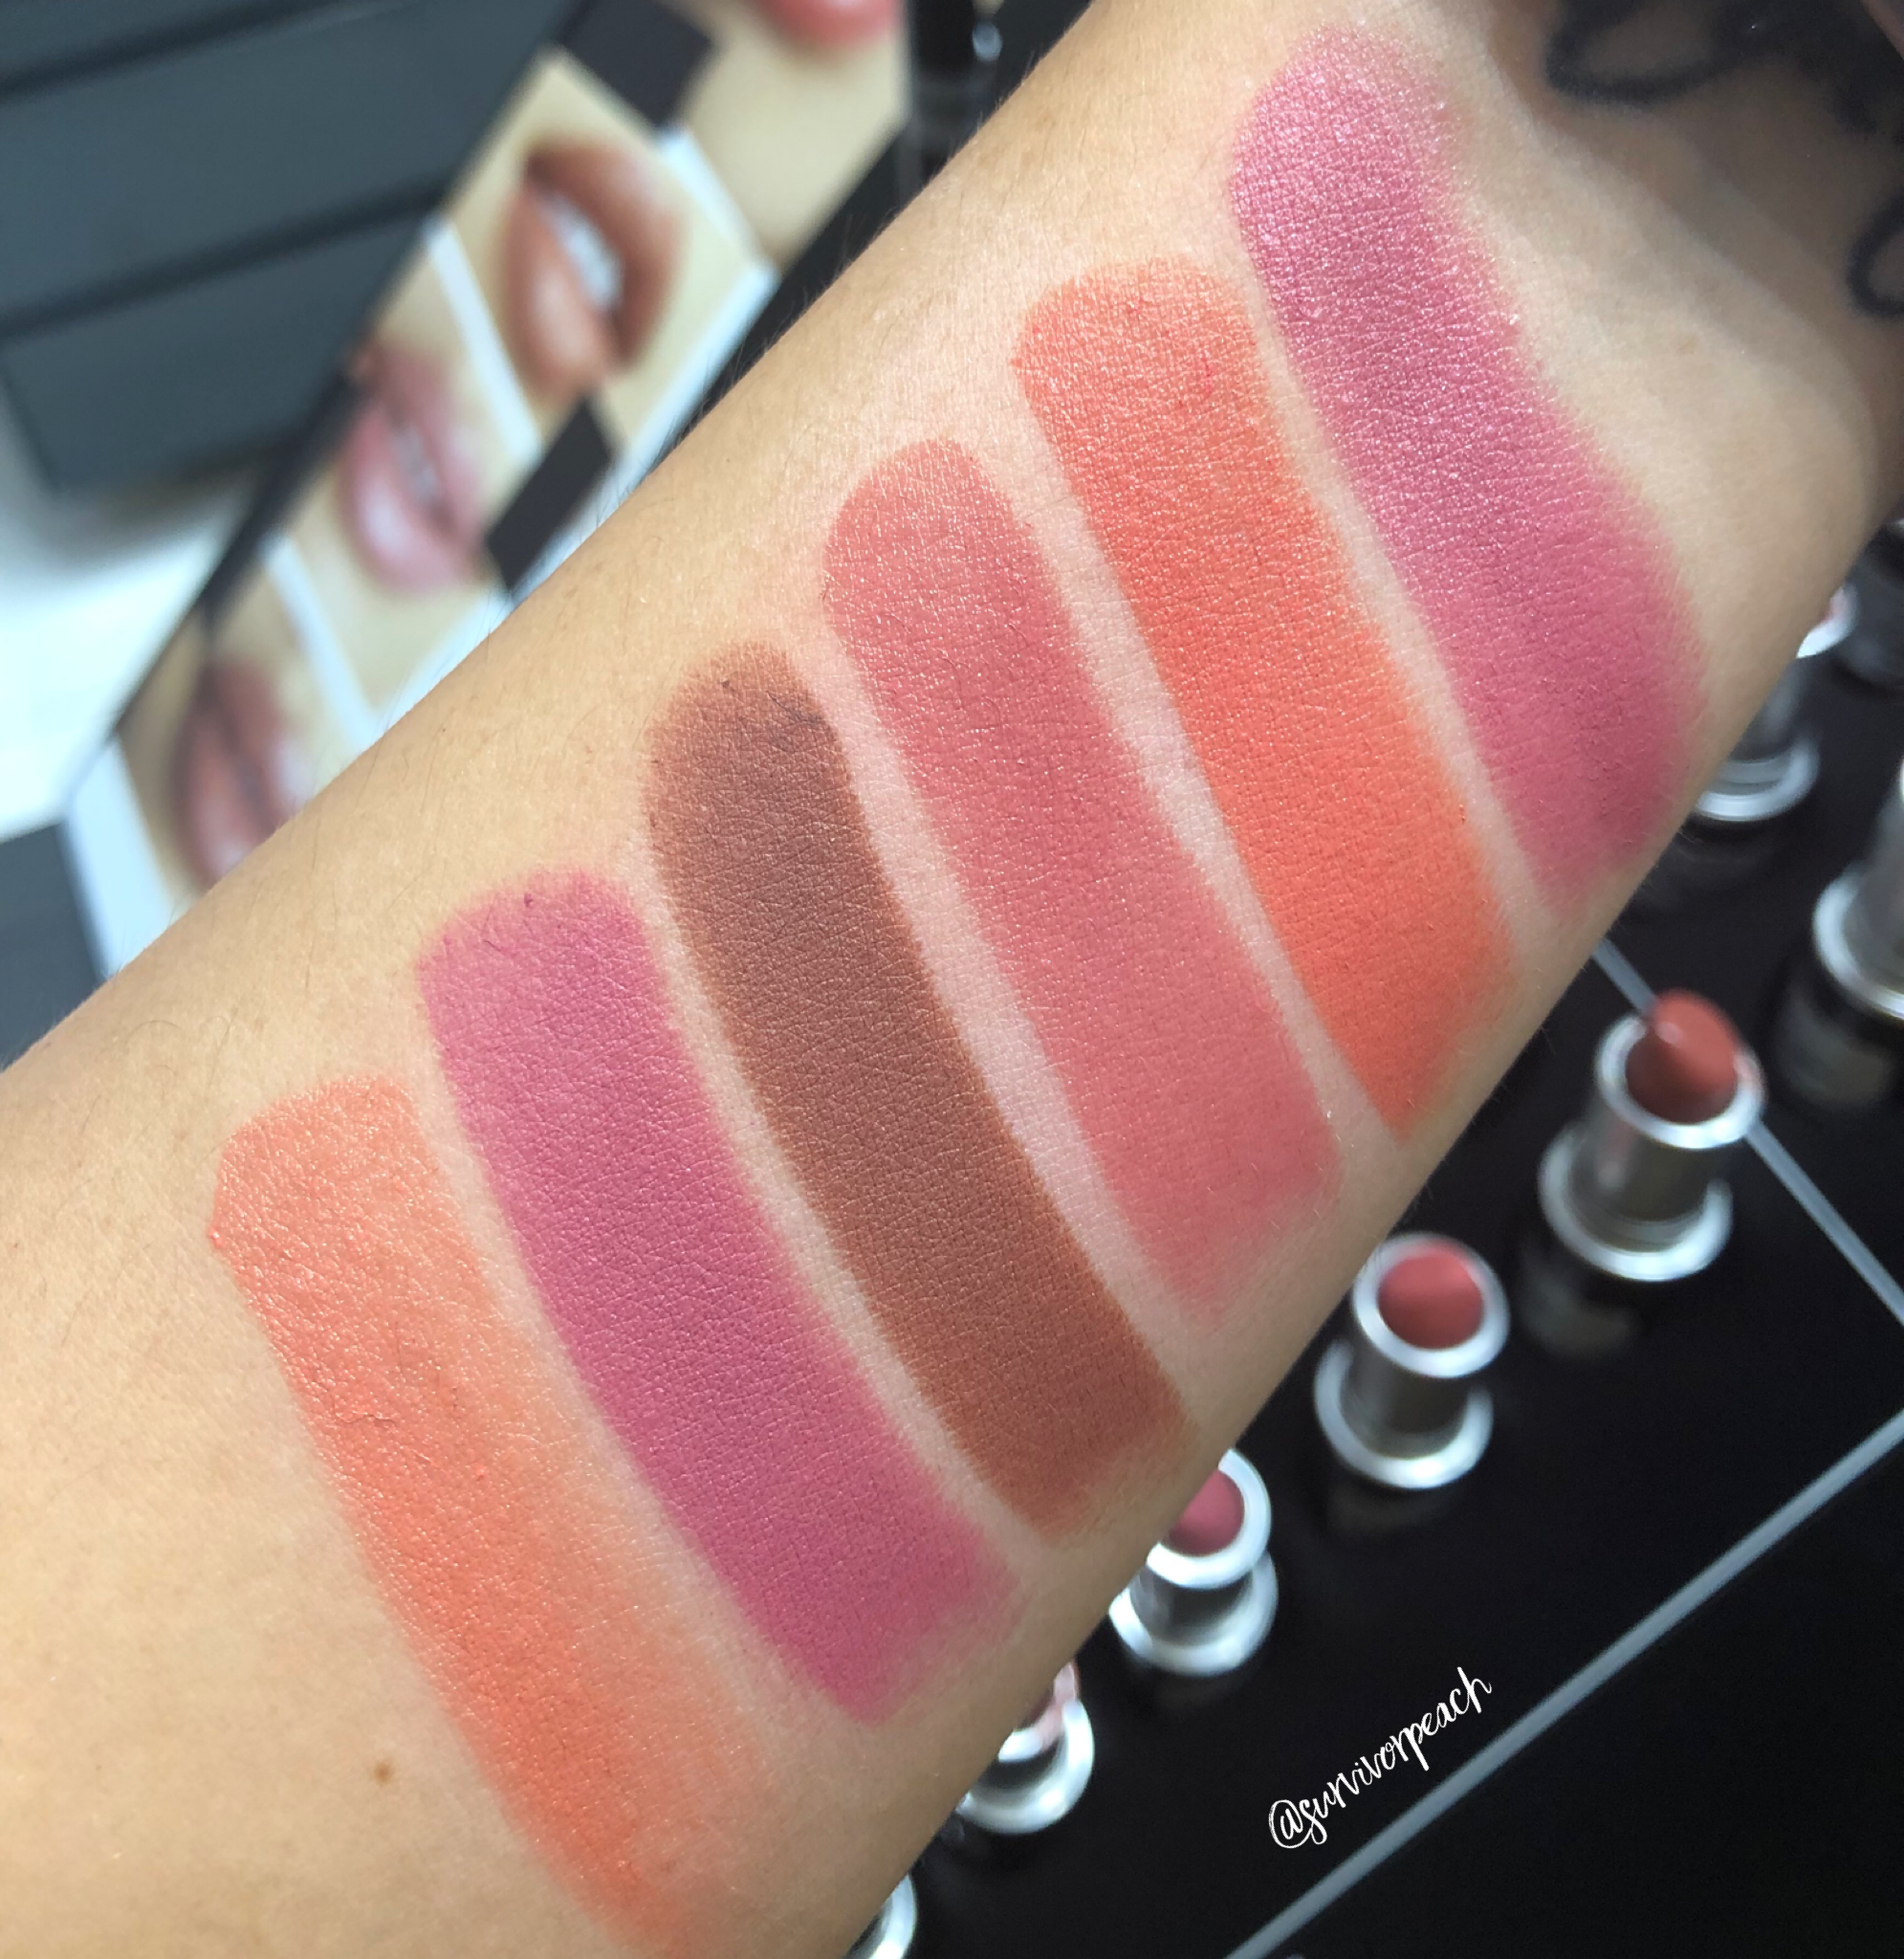 Mac Naturally You Lipstick swatches - Brave, Peachy New Year, Fanfare, Whirl, You Wouldn't Get It, Ravishing.